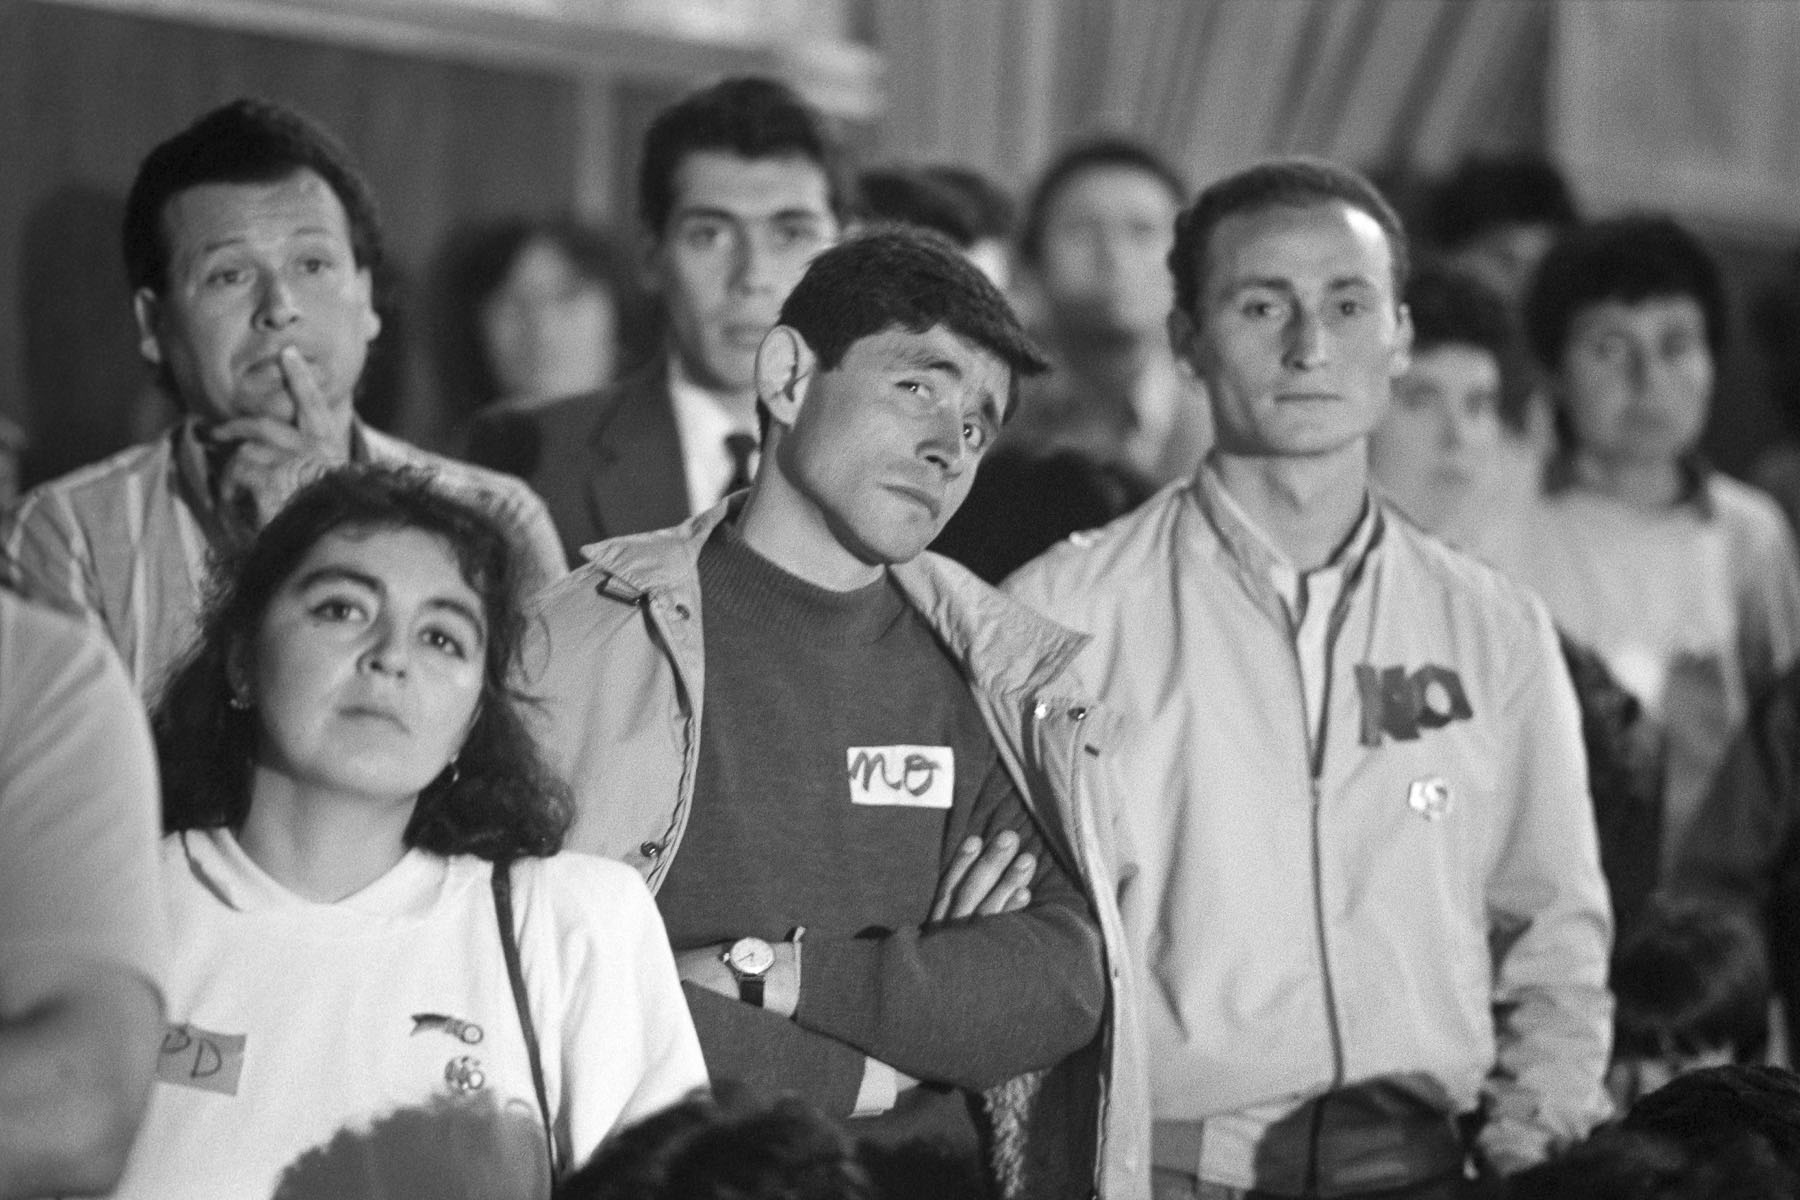 Augusto Pinochet opponents at NO rally during plebiscite Yes/No vote campaign in September 1988